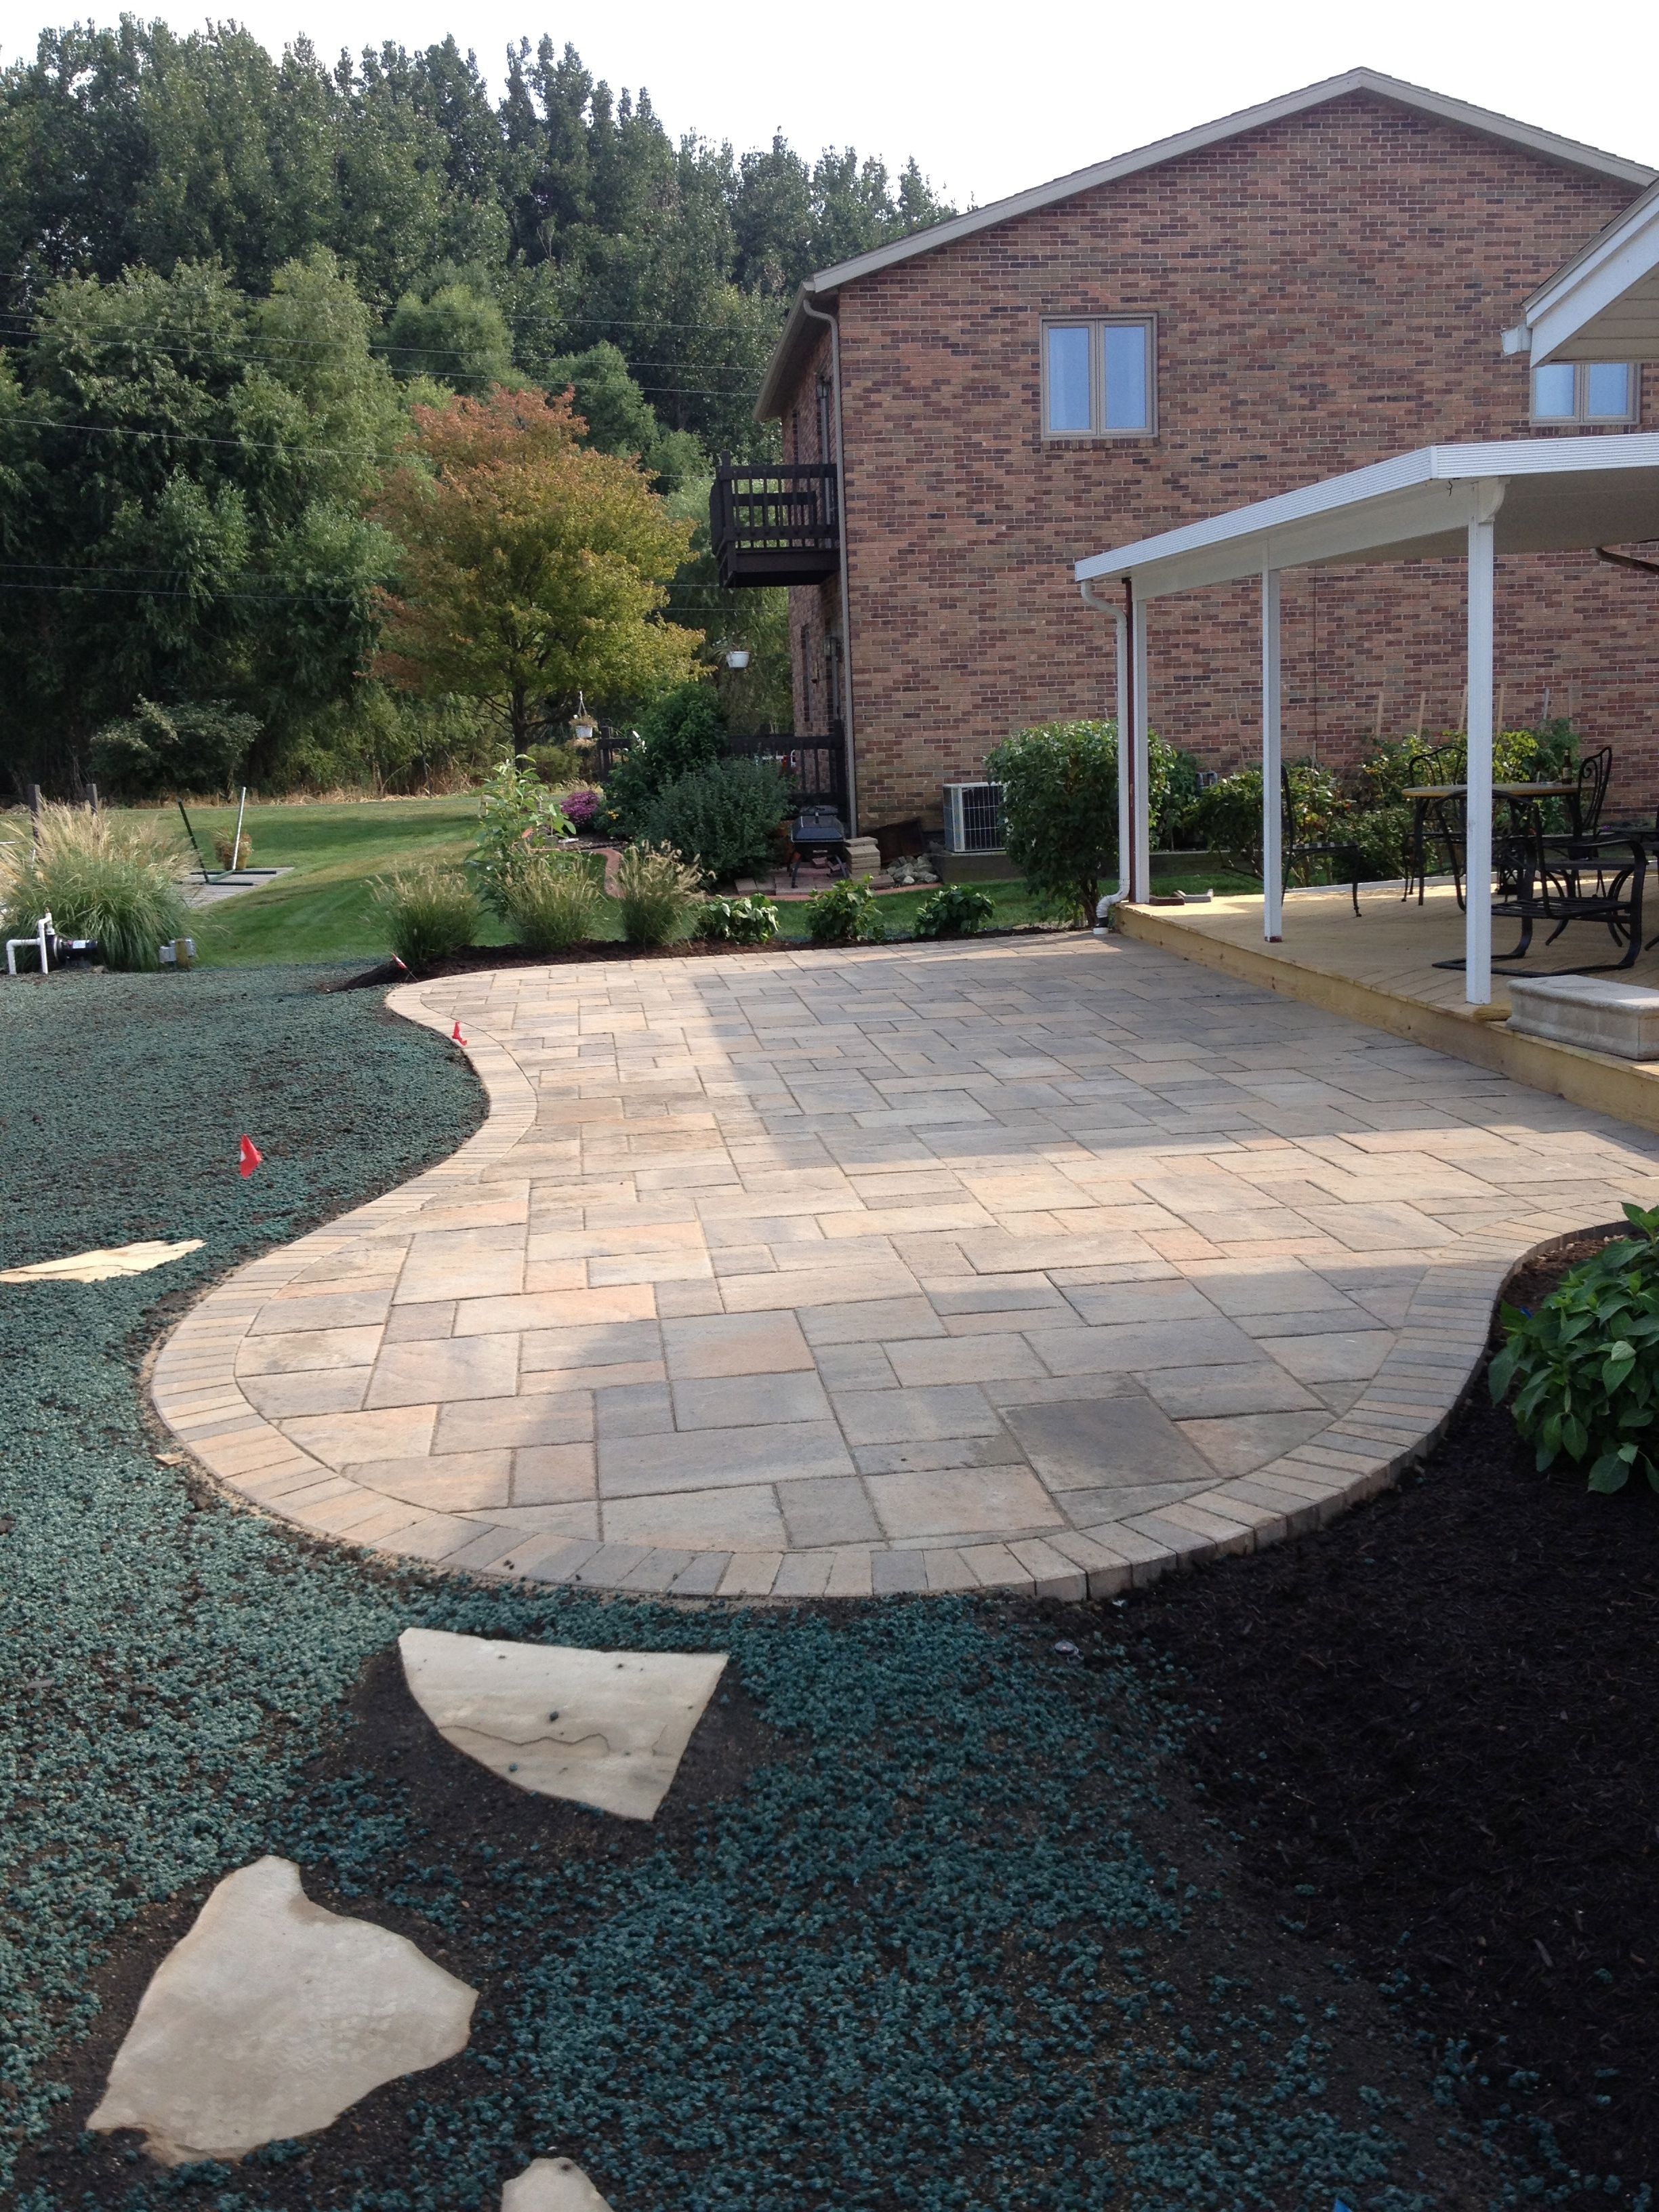 We Gave This Back Yard A Facelift With New Paver